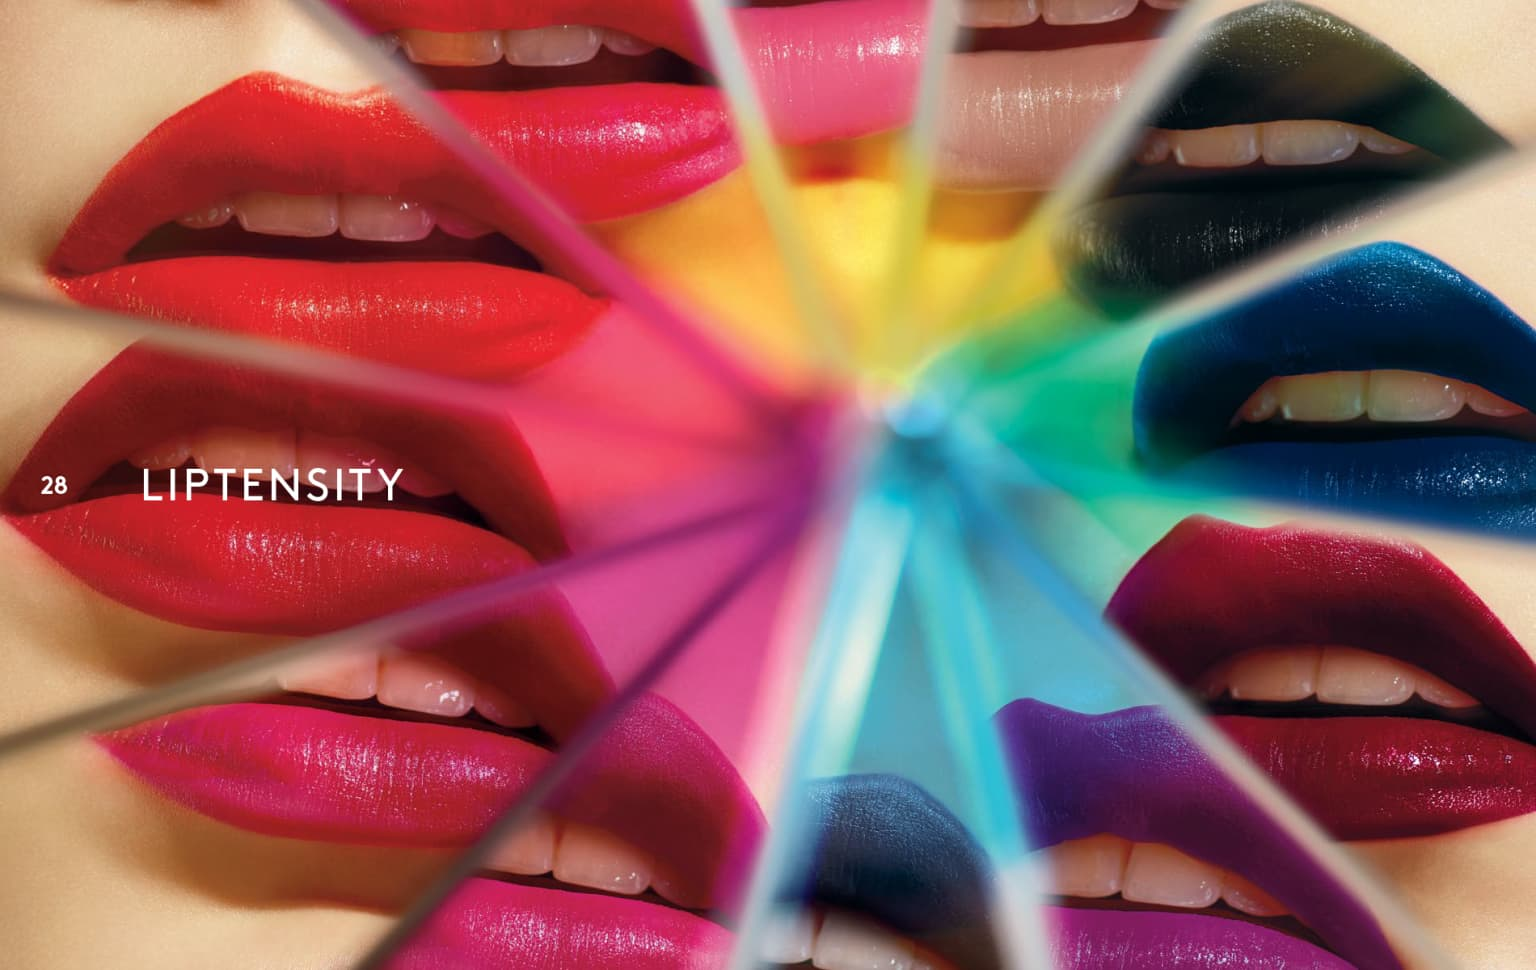 M•A•C Cosmetics Global Beauty Campaigns